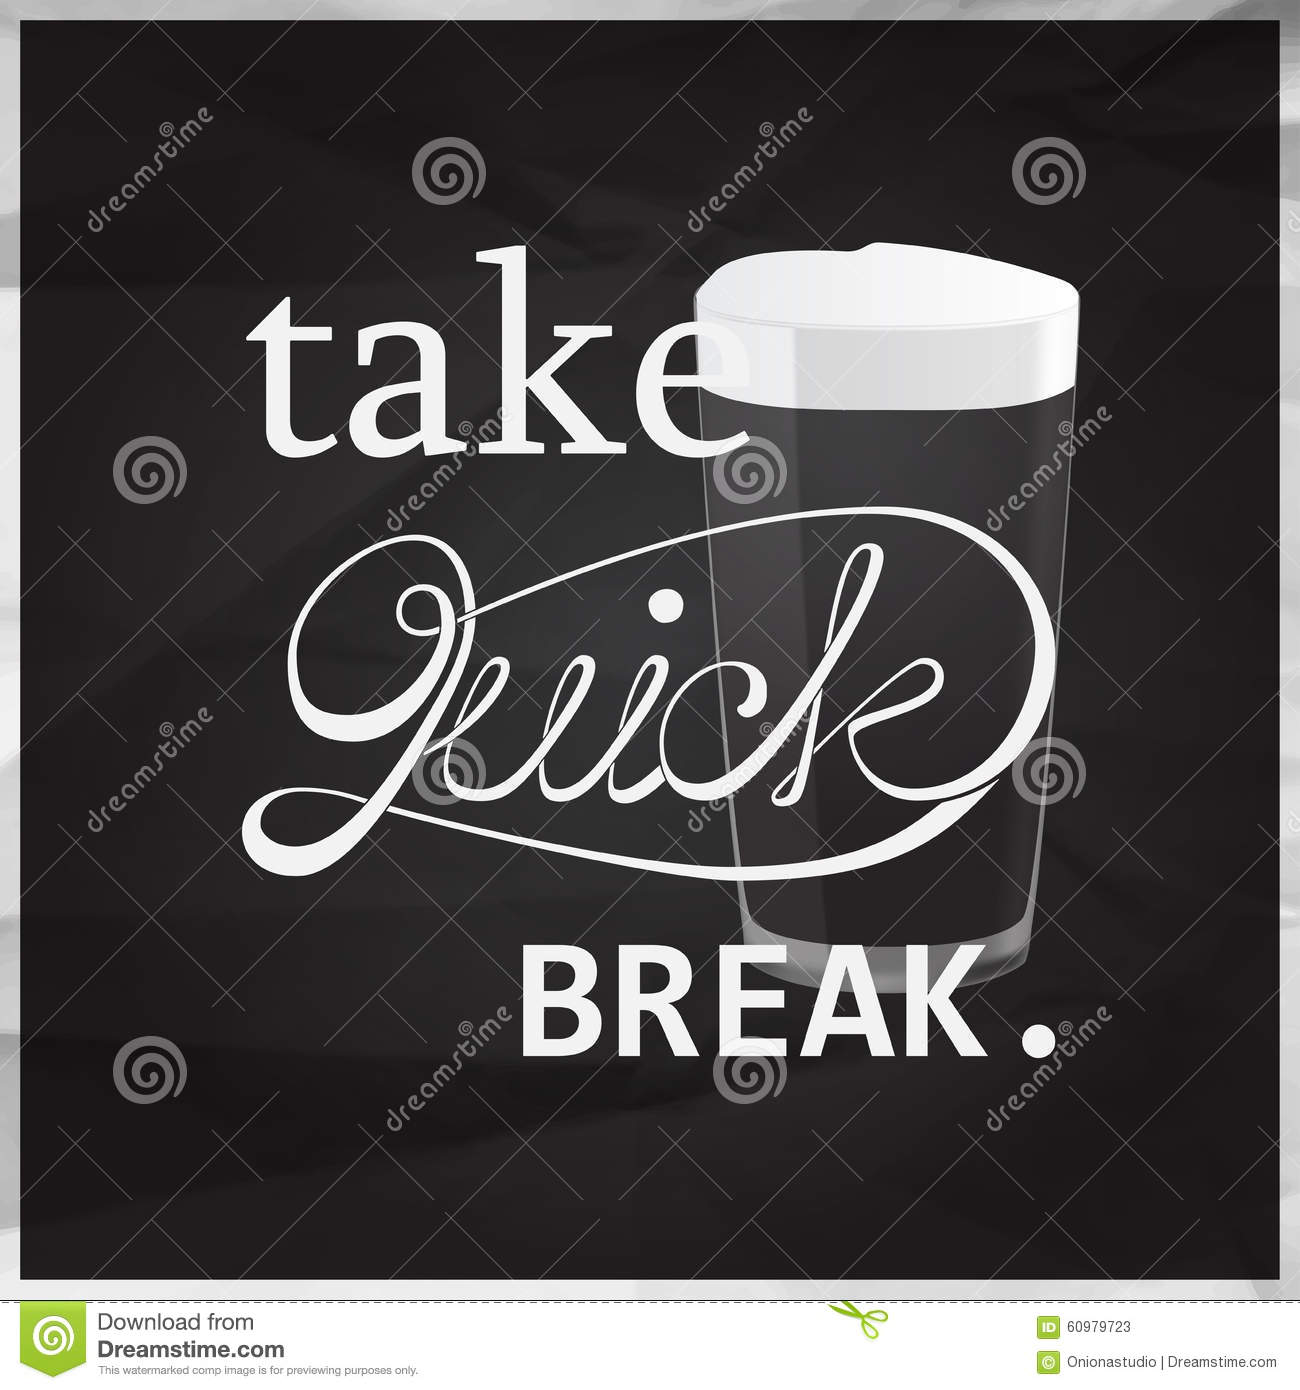 Take quick brake quote stock vector  Illustration of